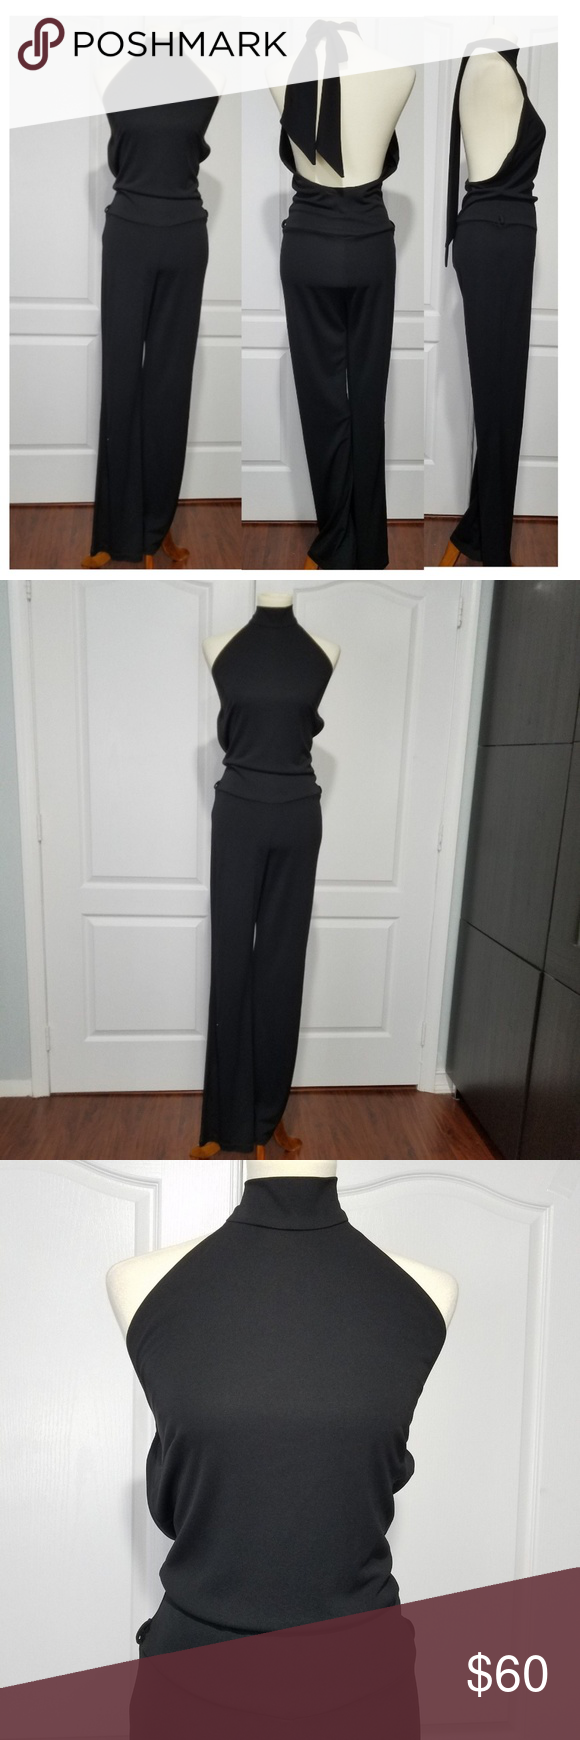 95c369386931 Cache Black Open Back Jumpsuit sz L Cache Women s Black Jumpsuit size Mock Neck  Halter - Ties on the back with a big bow Open Back Jersey Stretch Viscose   ...